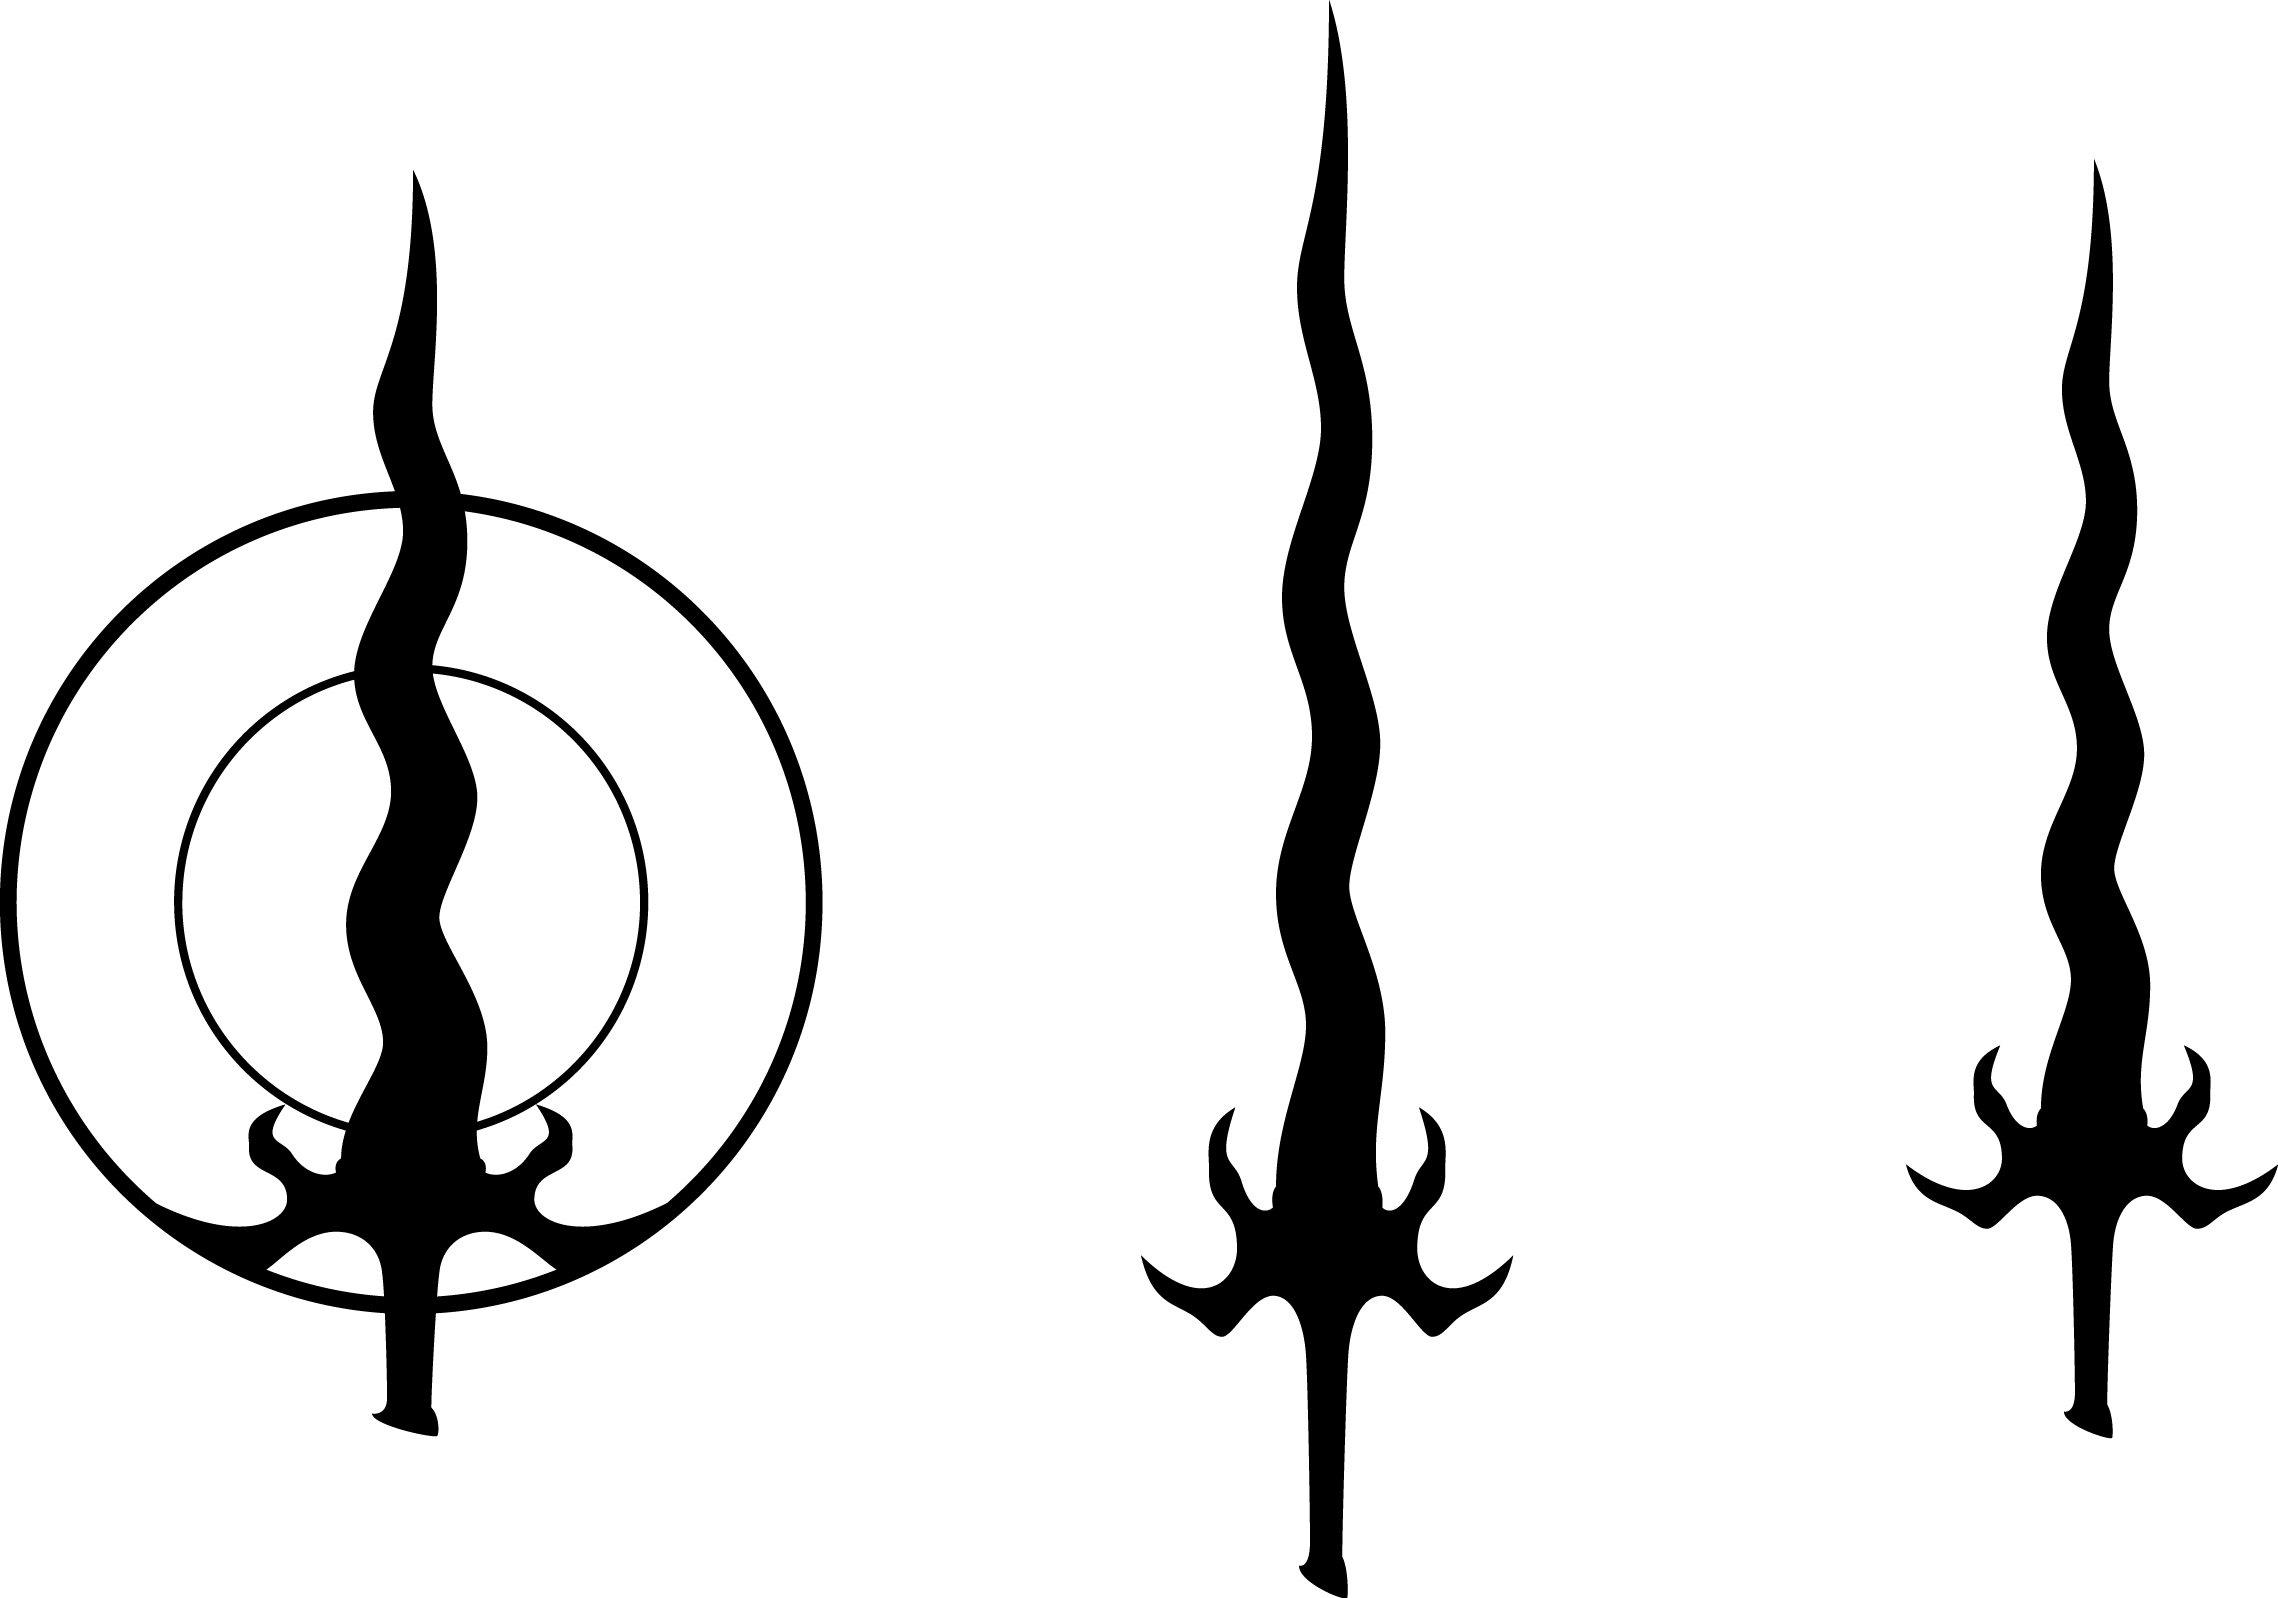 Symbols Legacy Of Kain Series Legacy Of Kain The Lost Worlds